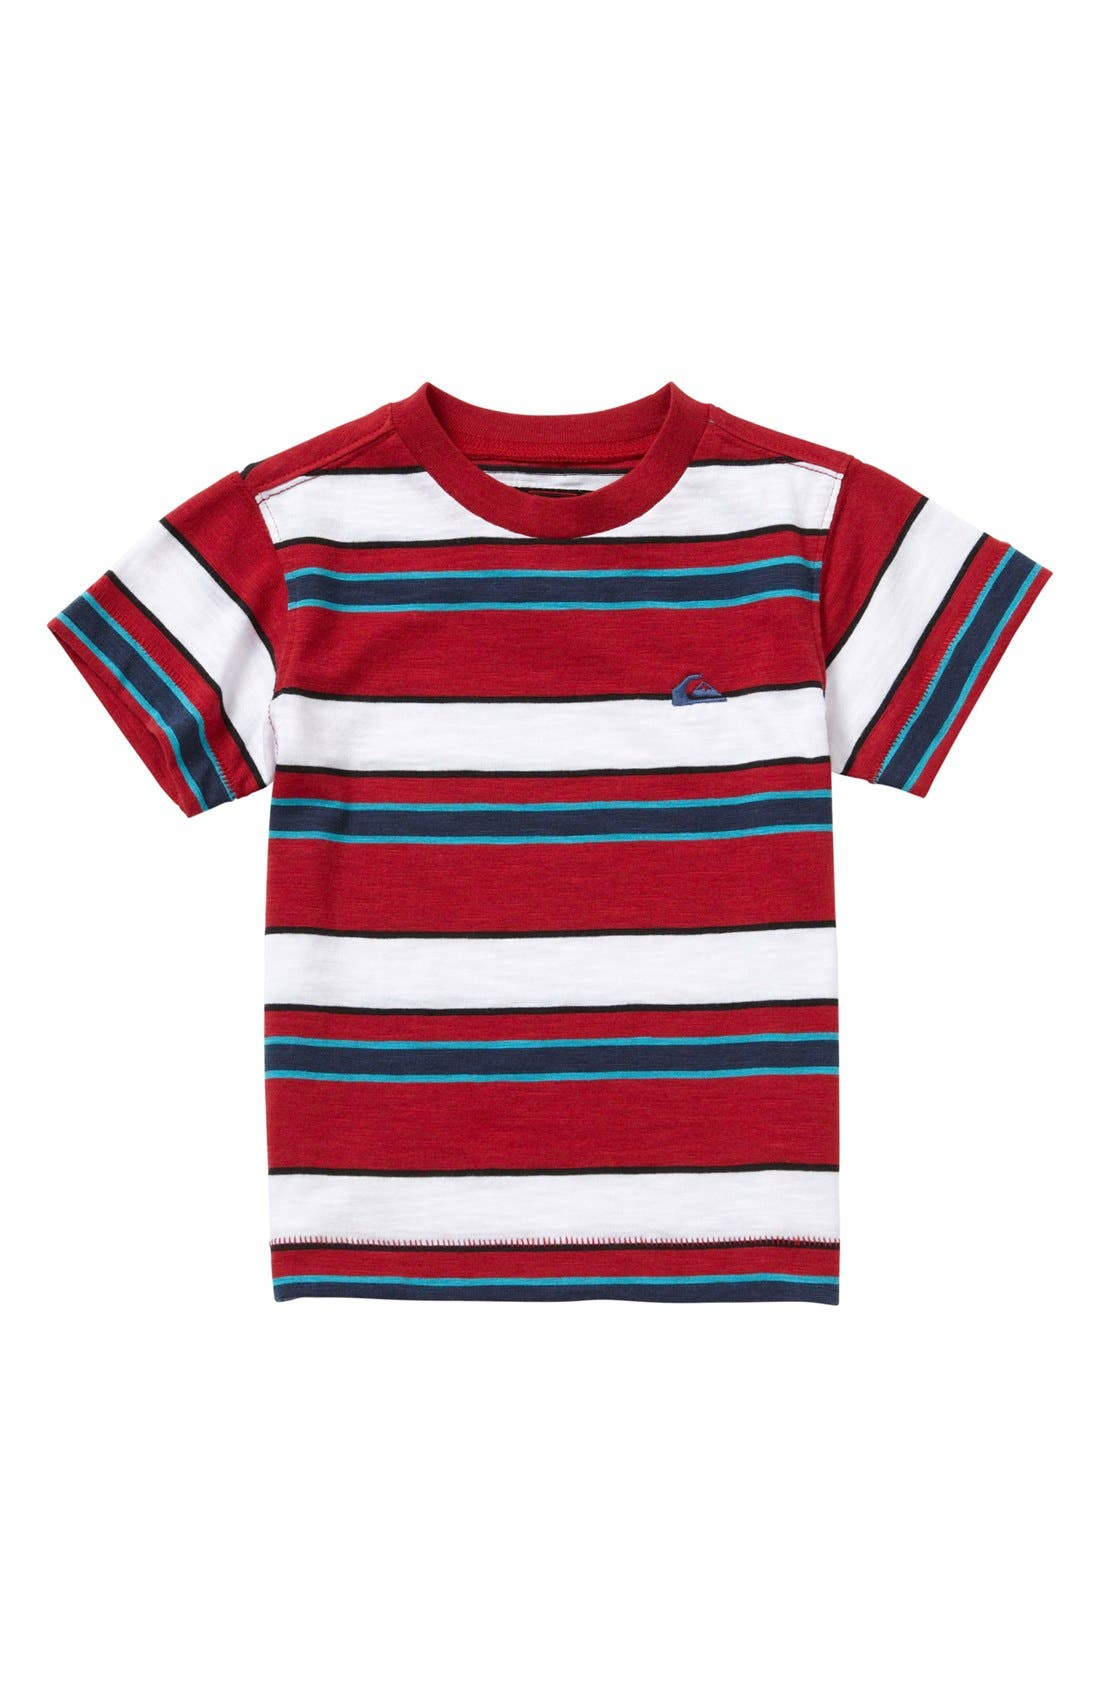 Alternate Image 1 Selected - Quiksilver 'Eld Street' T-Shirt (Baby Boys)